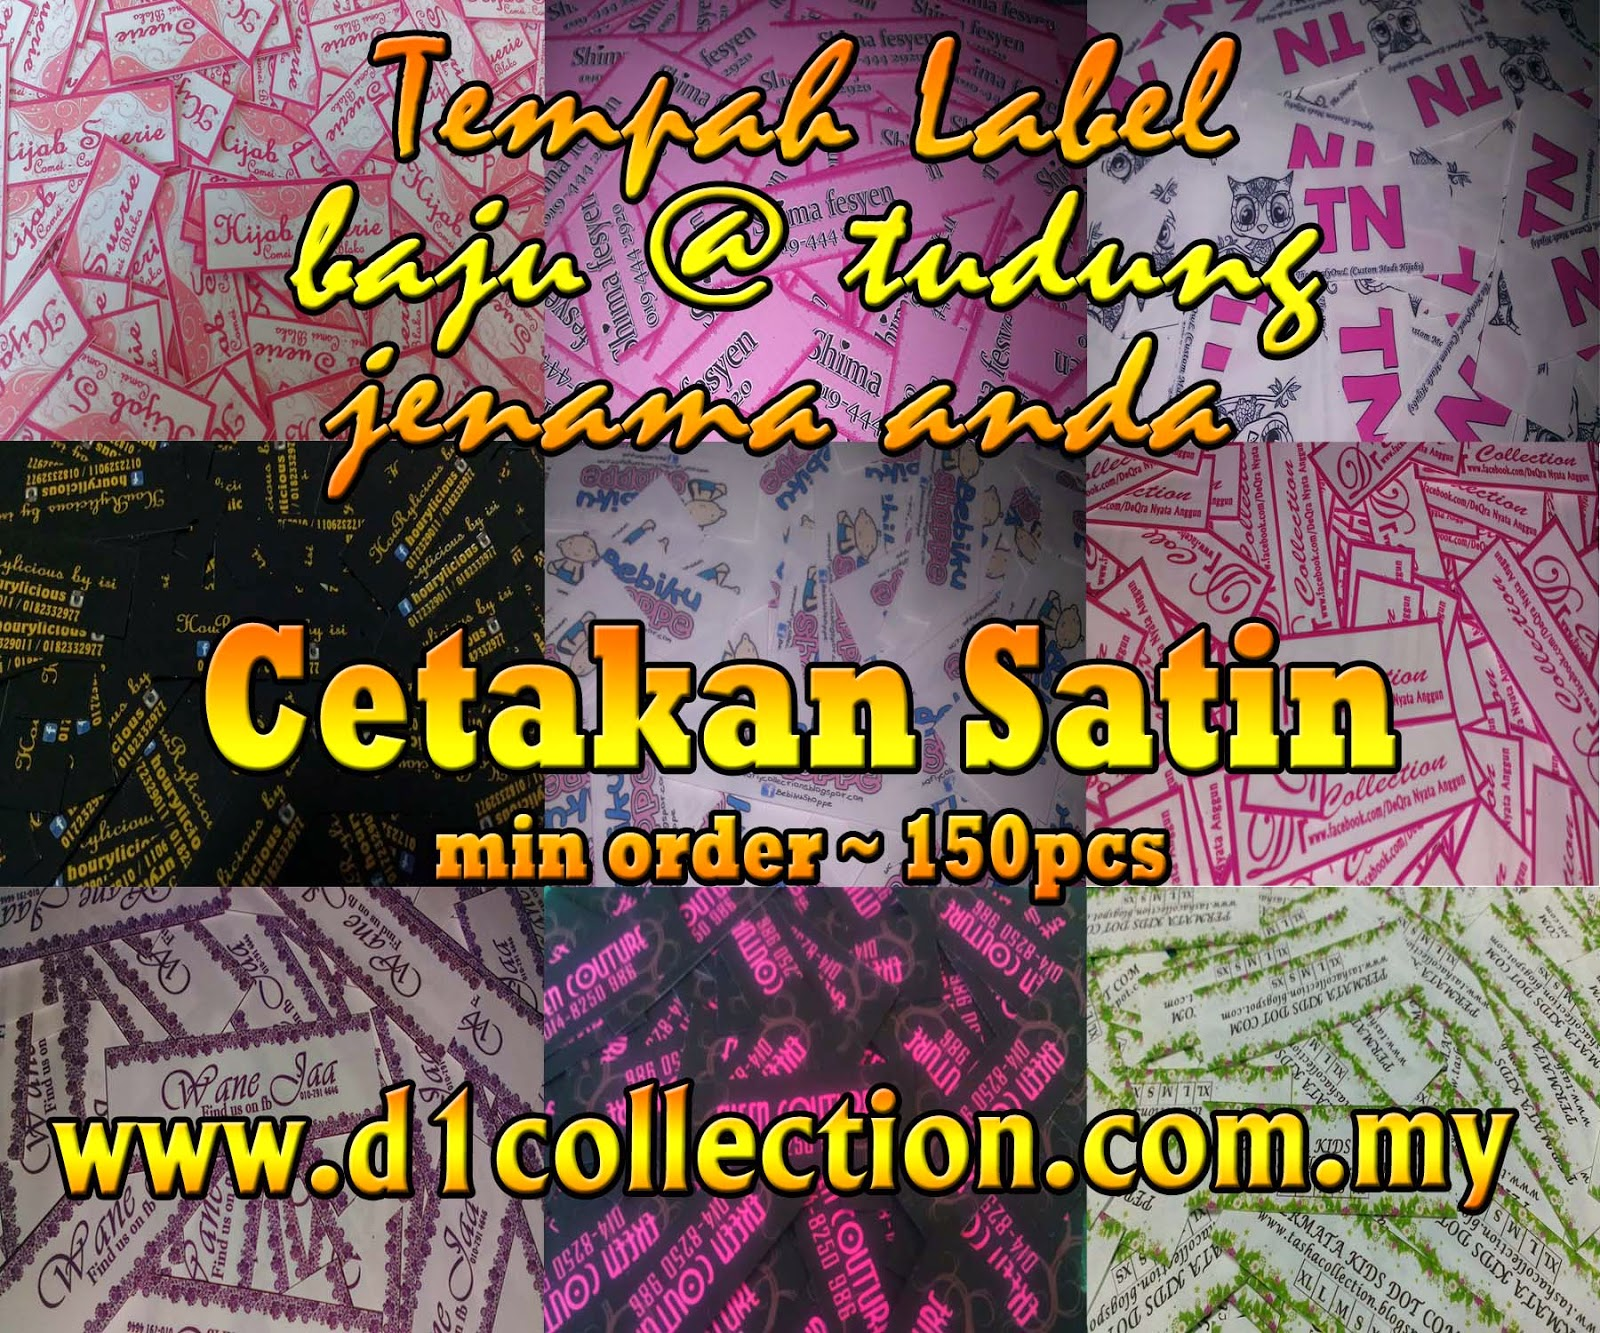 http://www.d1collection.com.my/search/label/Koleksi%20Satin%20Label